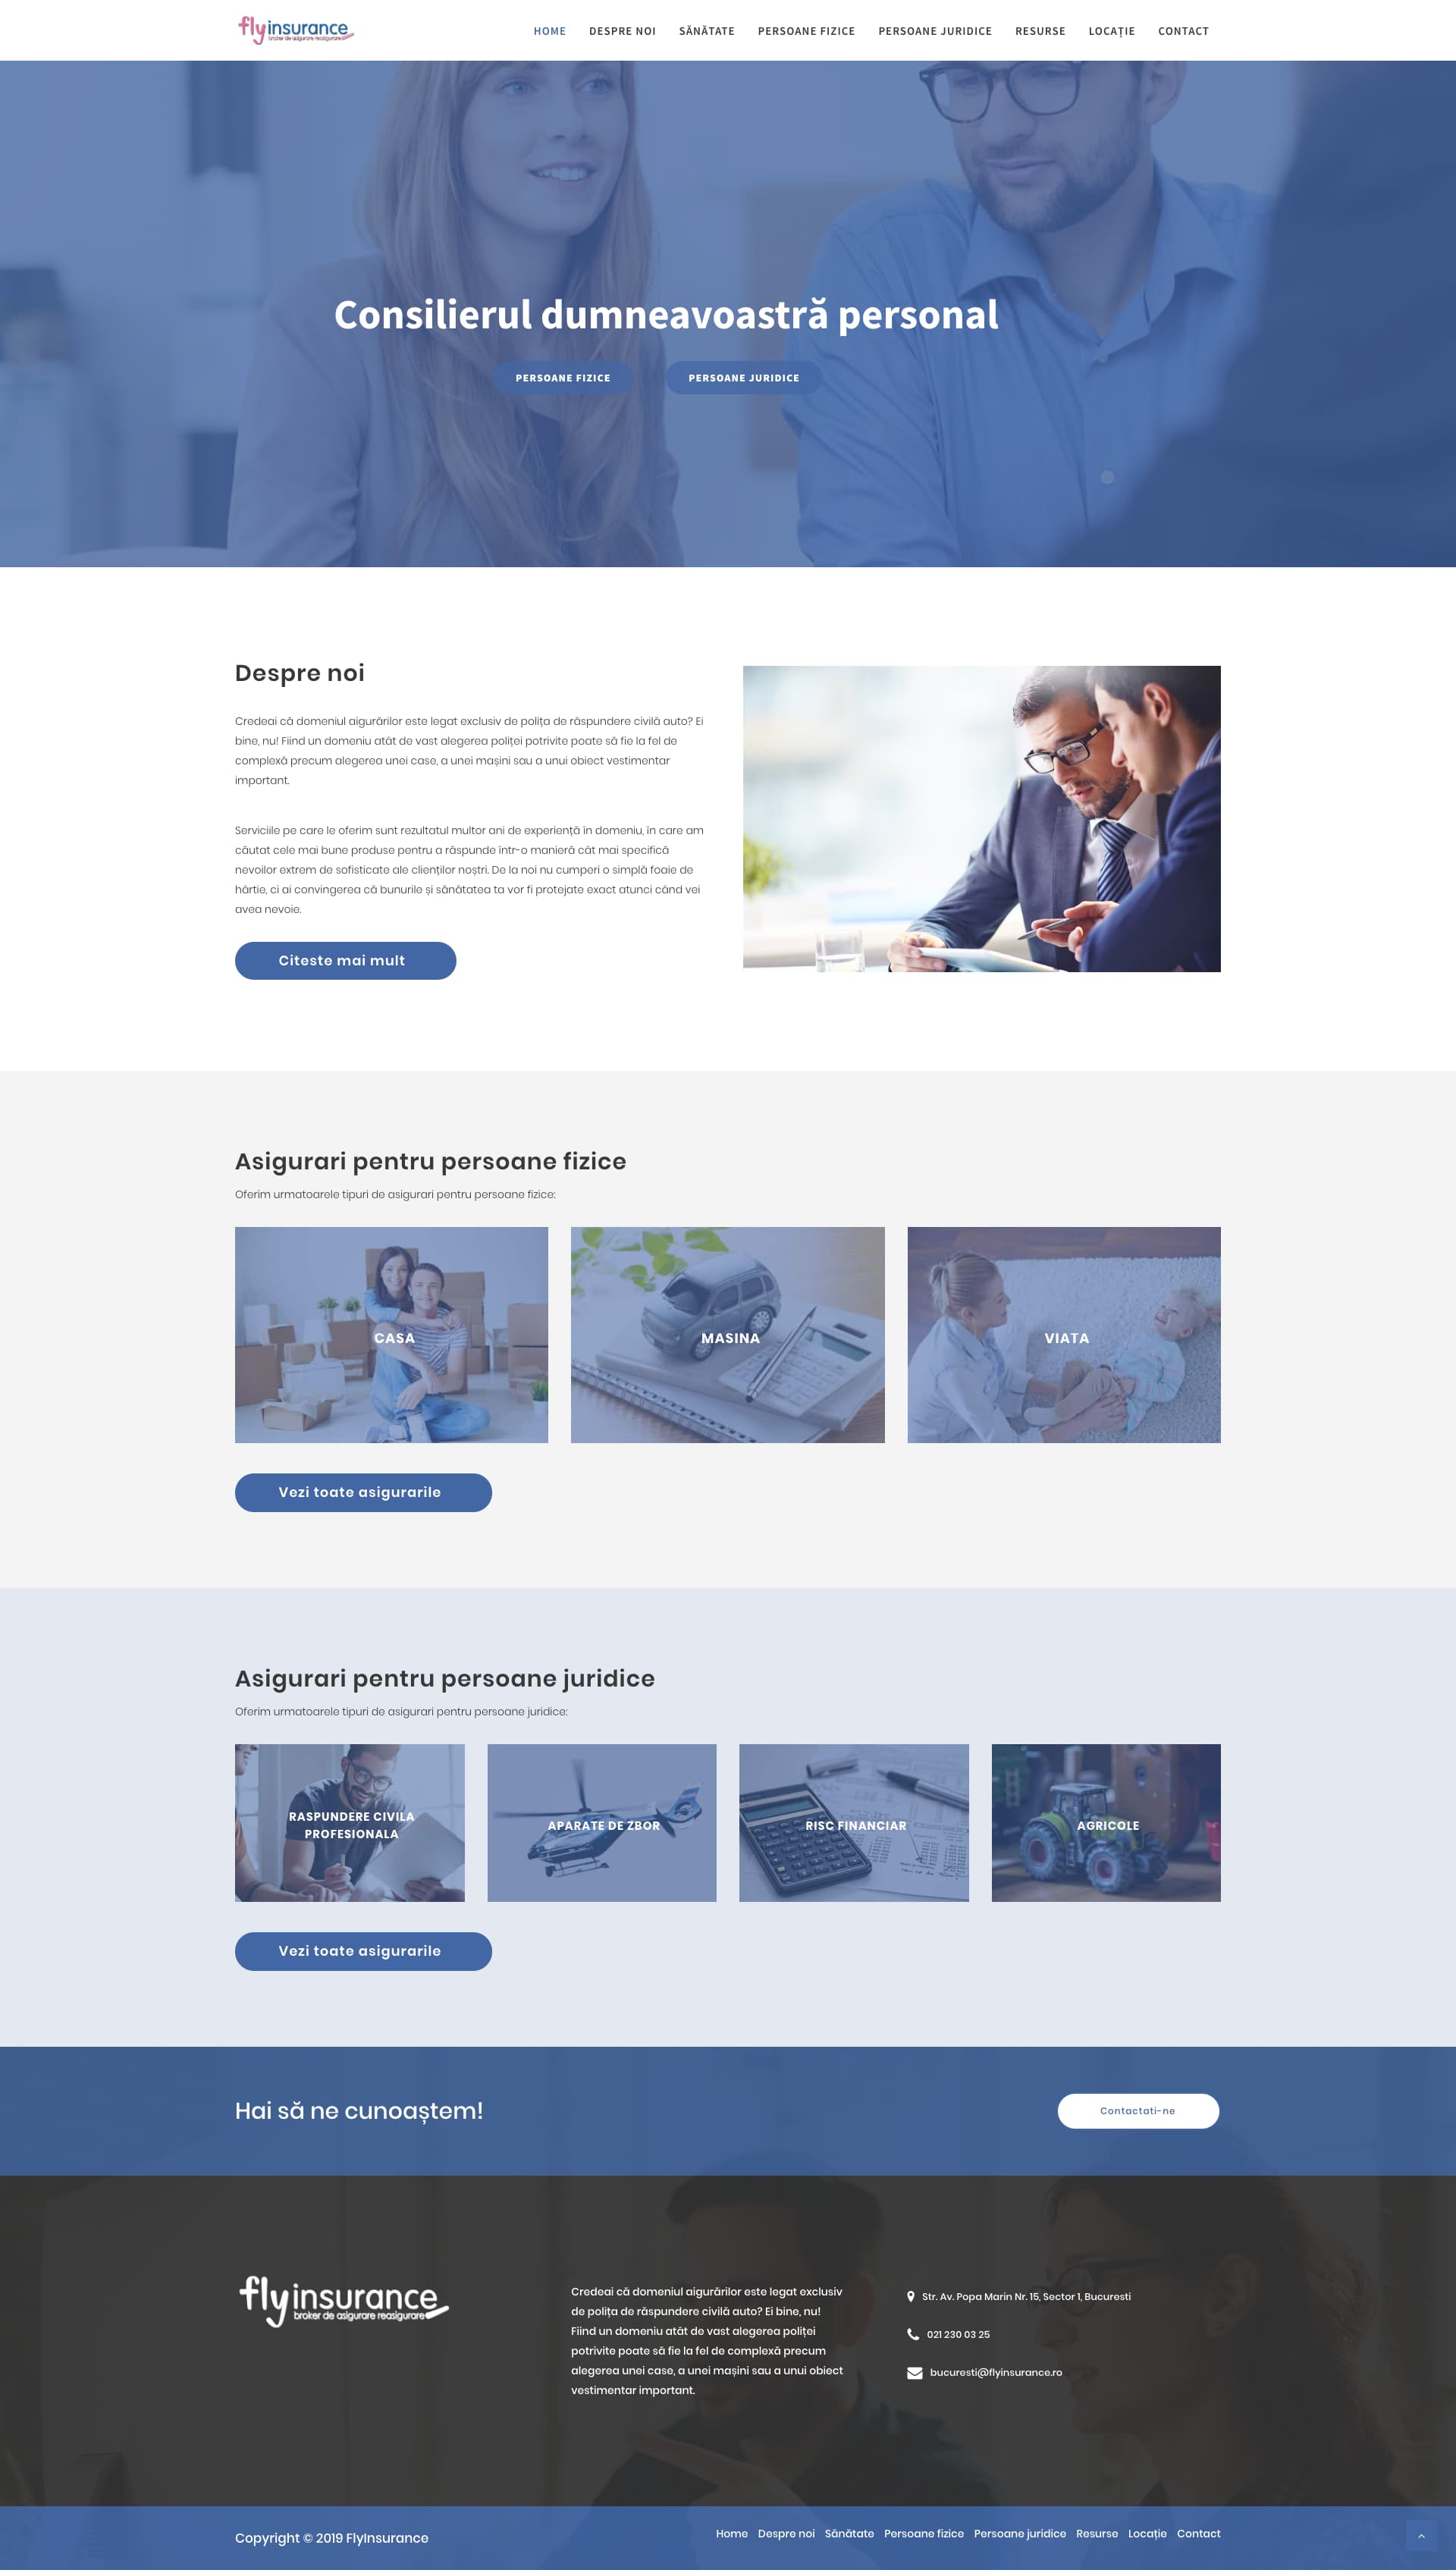 fly-insurance-homepage